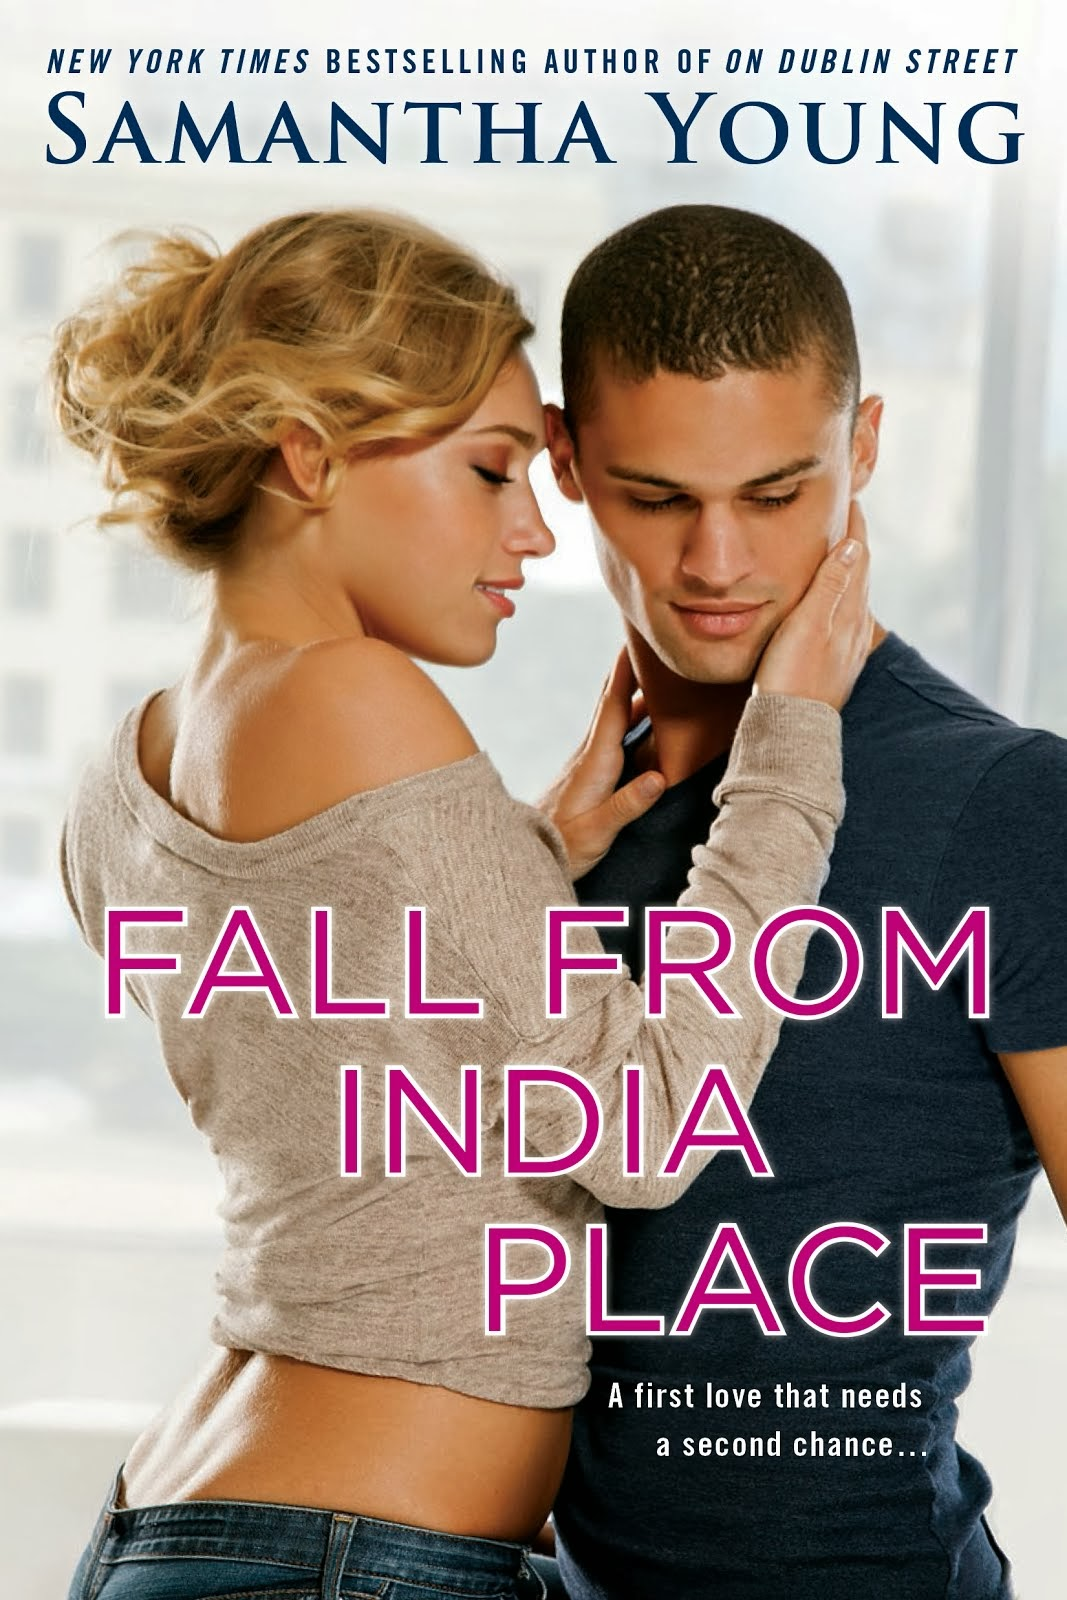 PREORDER FALL FROM INDIA PLACE